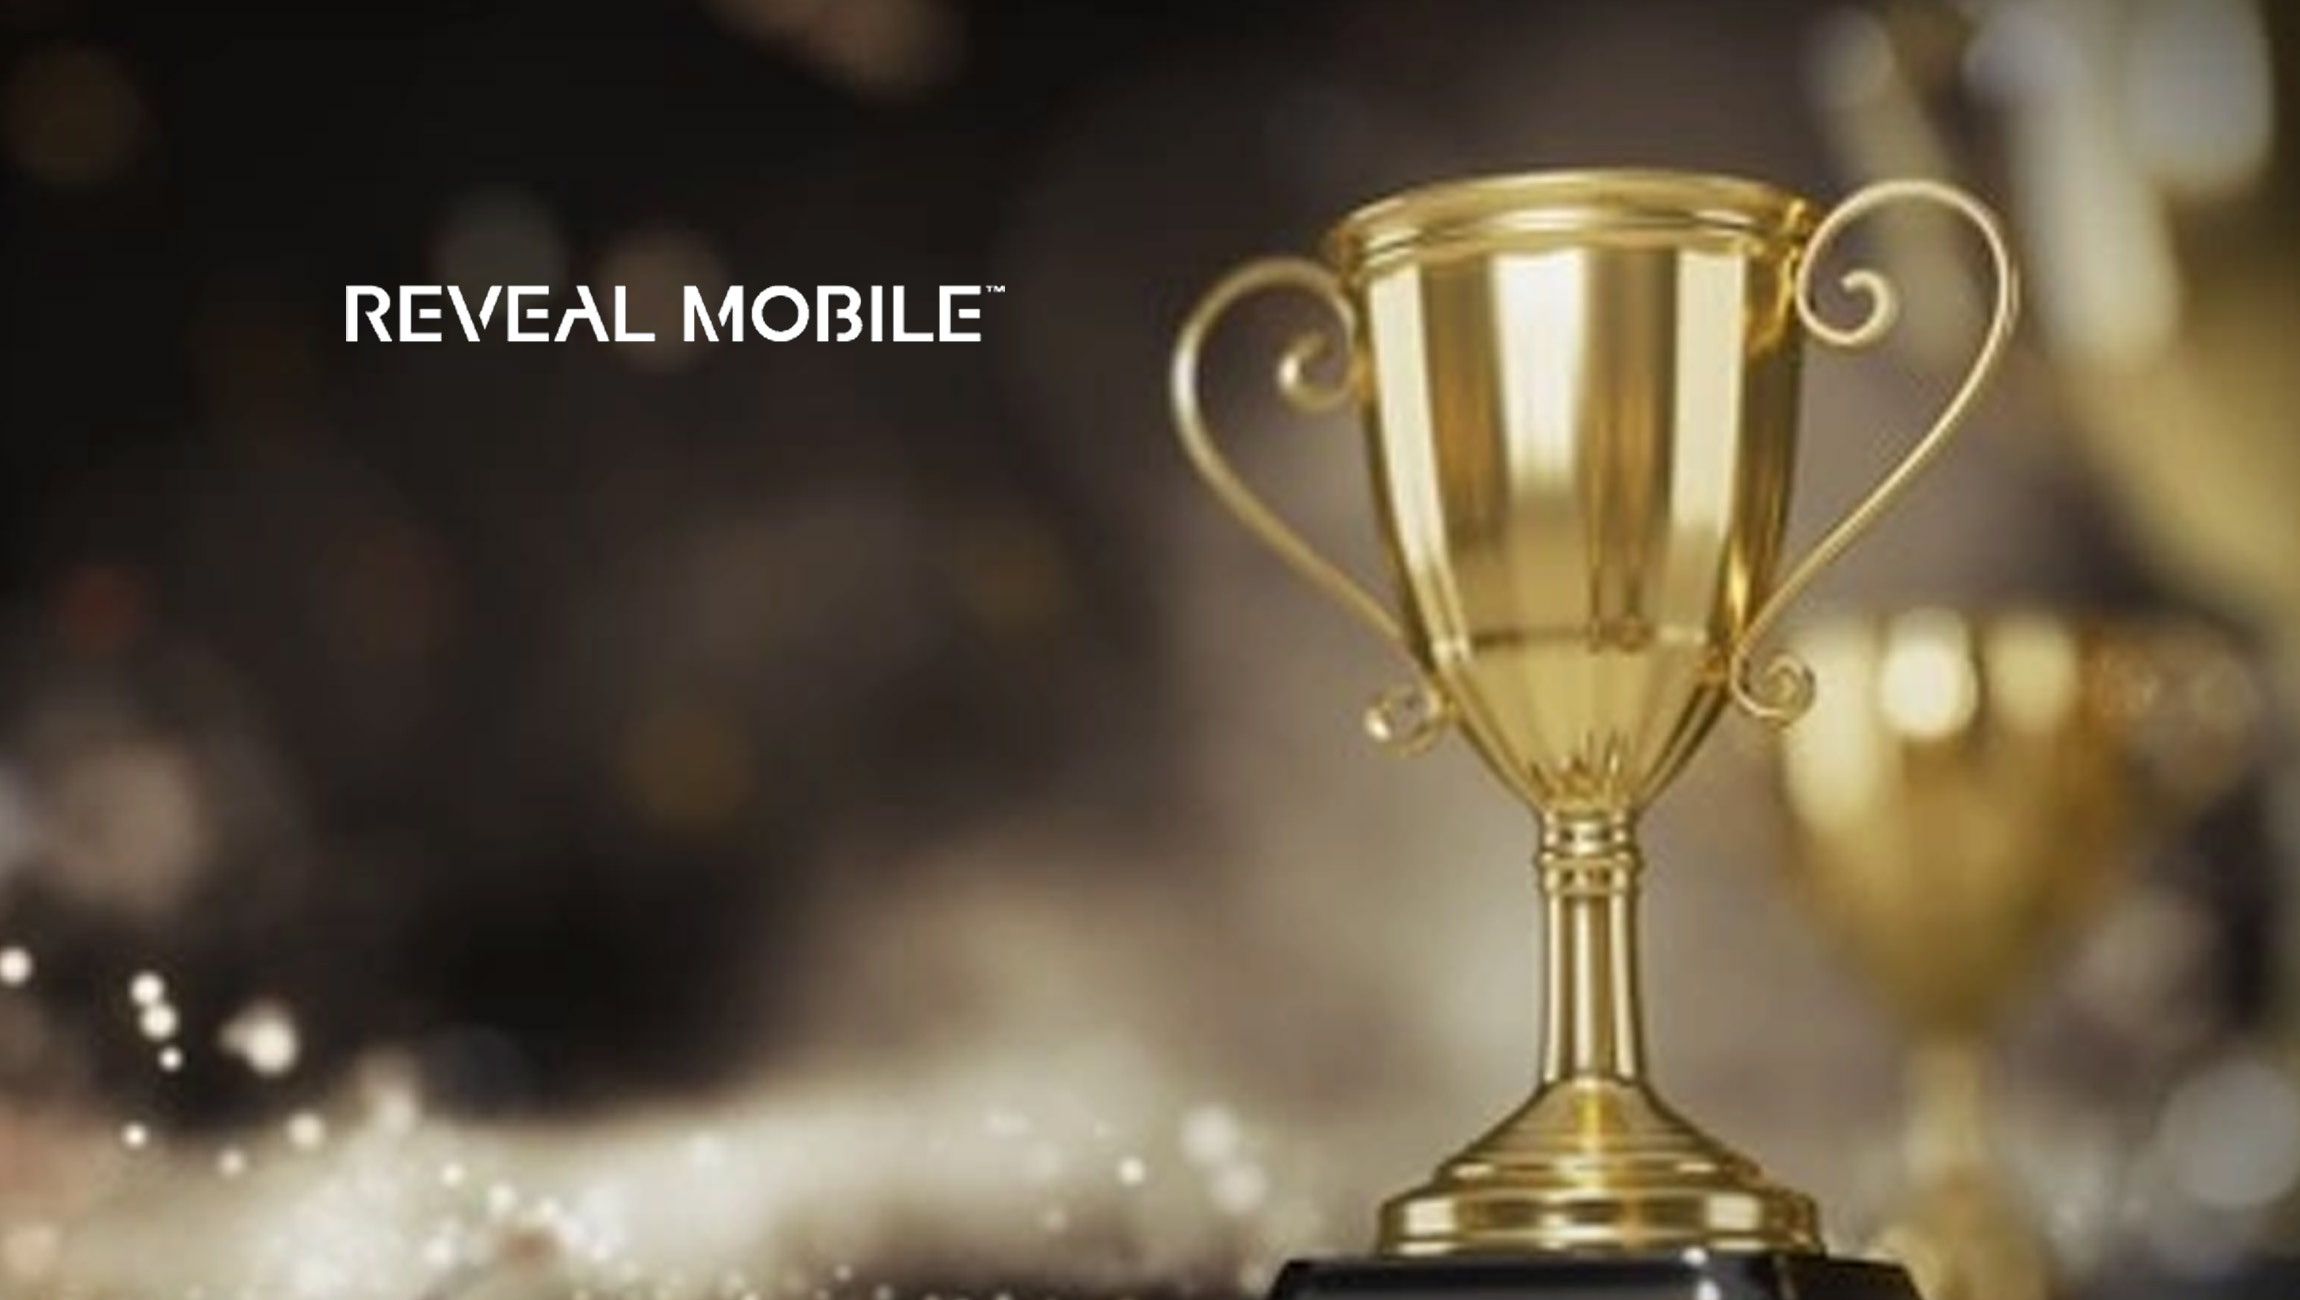 Reveal-Mobile-Receives-Top-Award-for-Innovative-Sales-and-Marketing-Technology